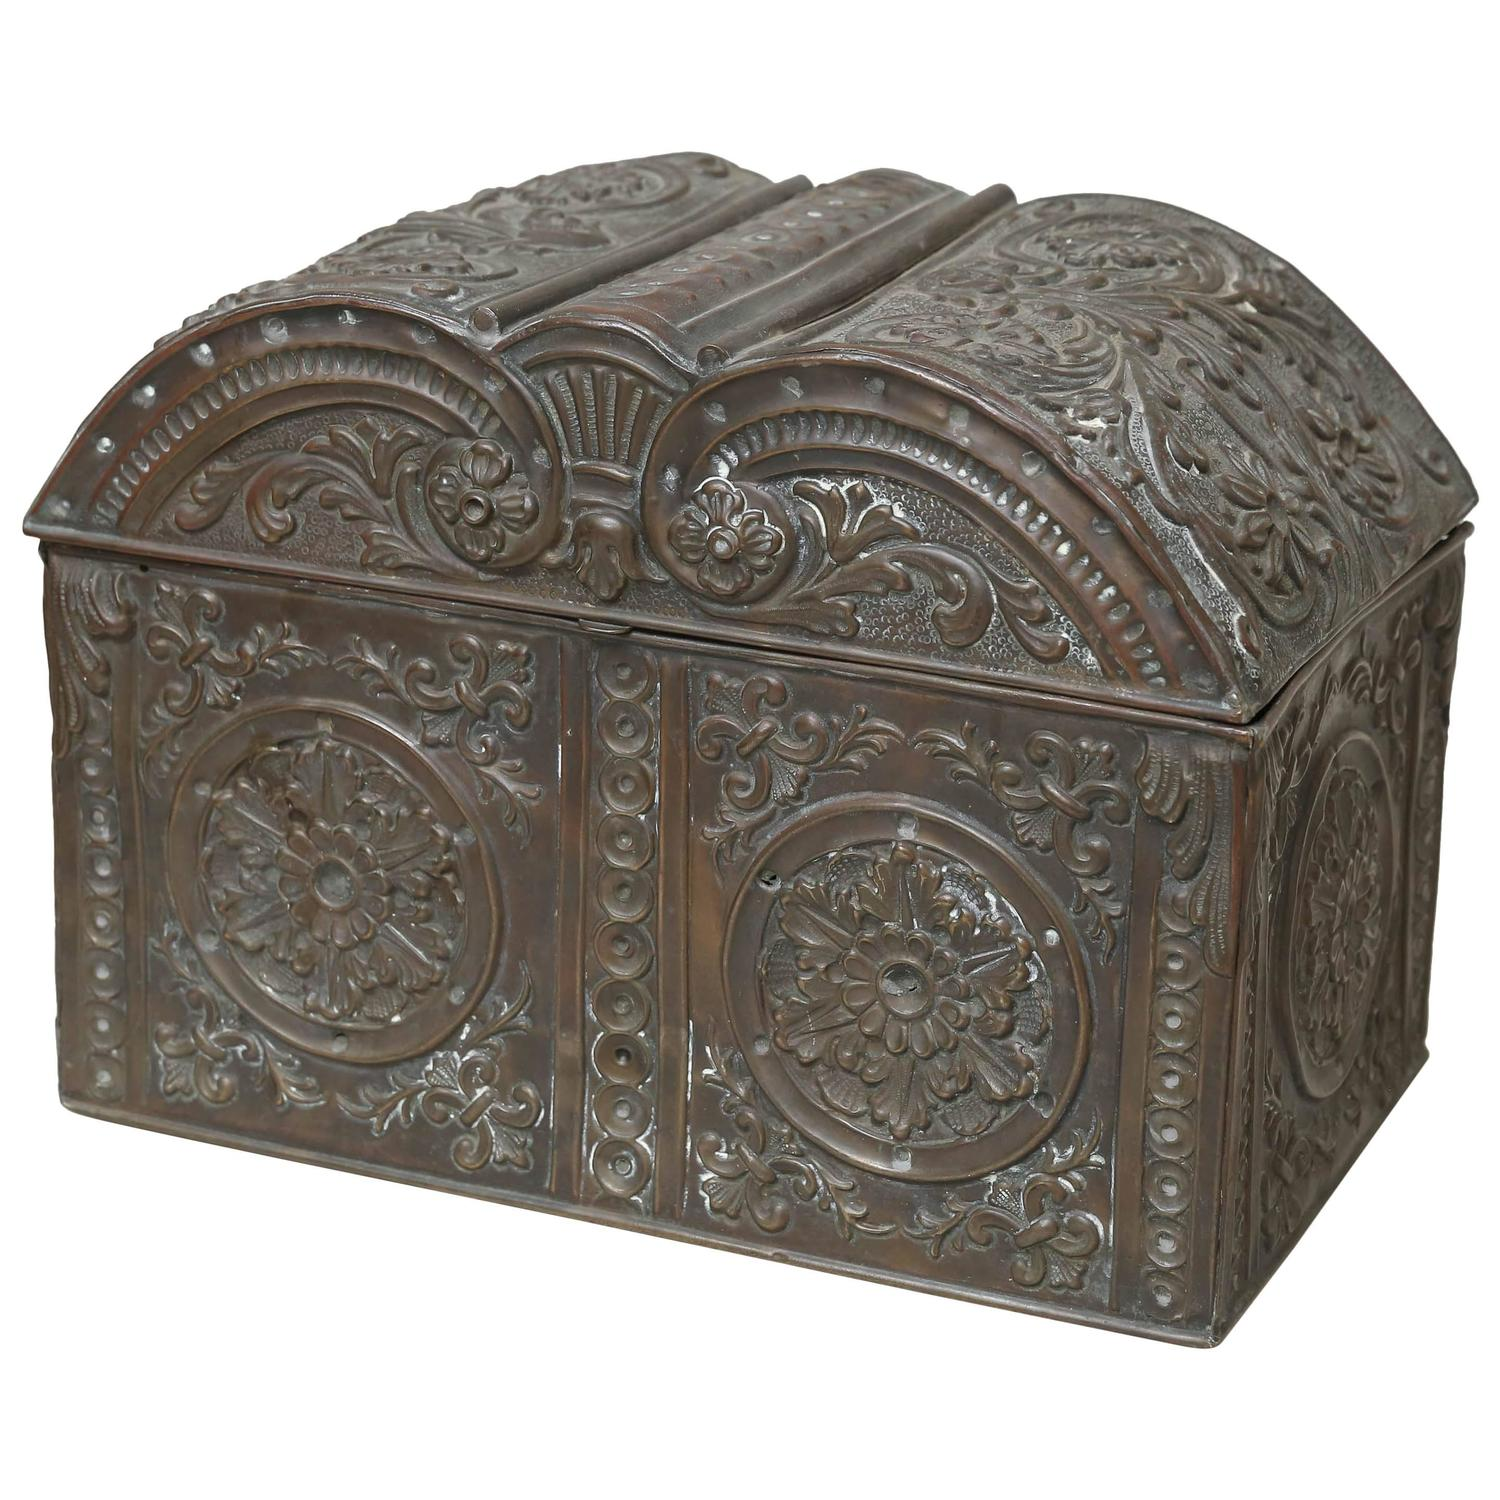 19th Century French Embossed Metal Box At 1stdibs